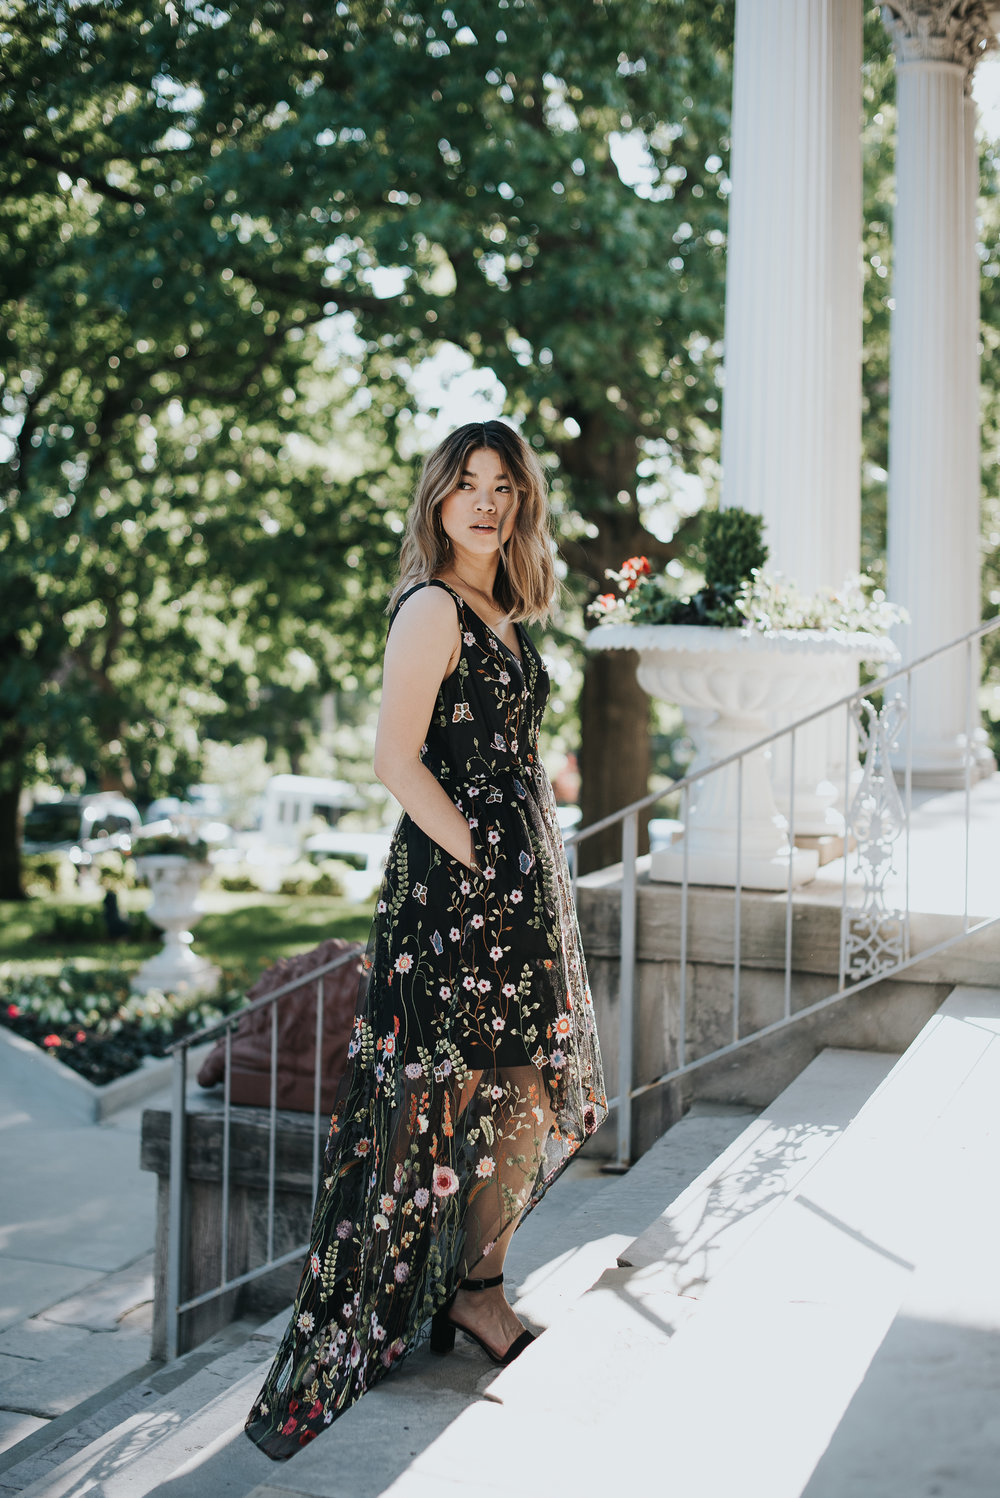 Adrianna Papell Dresses to Wear to a Wedding